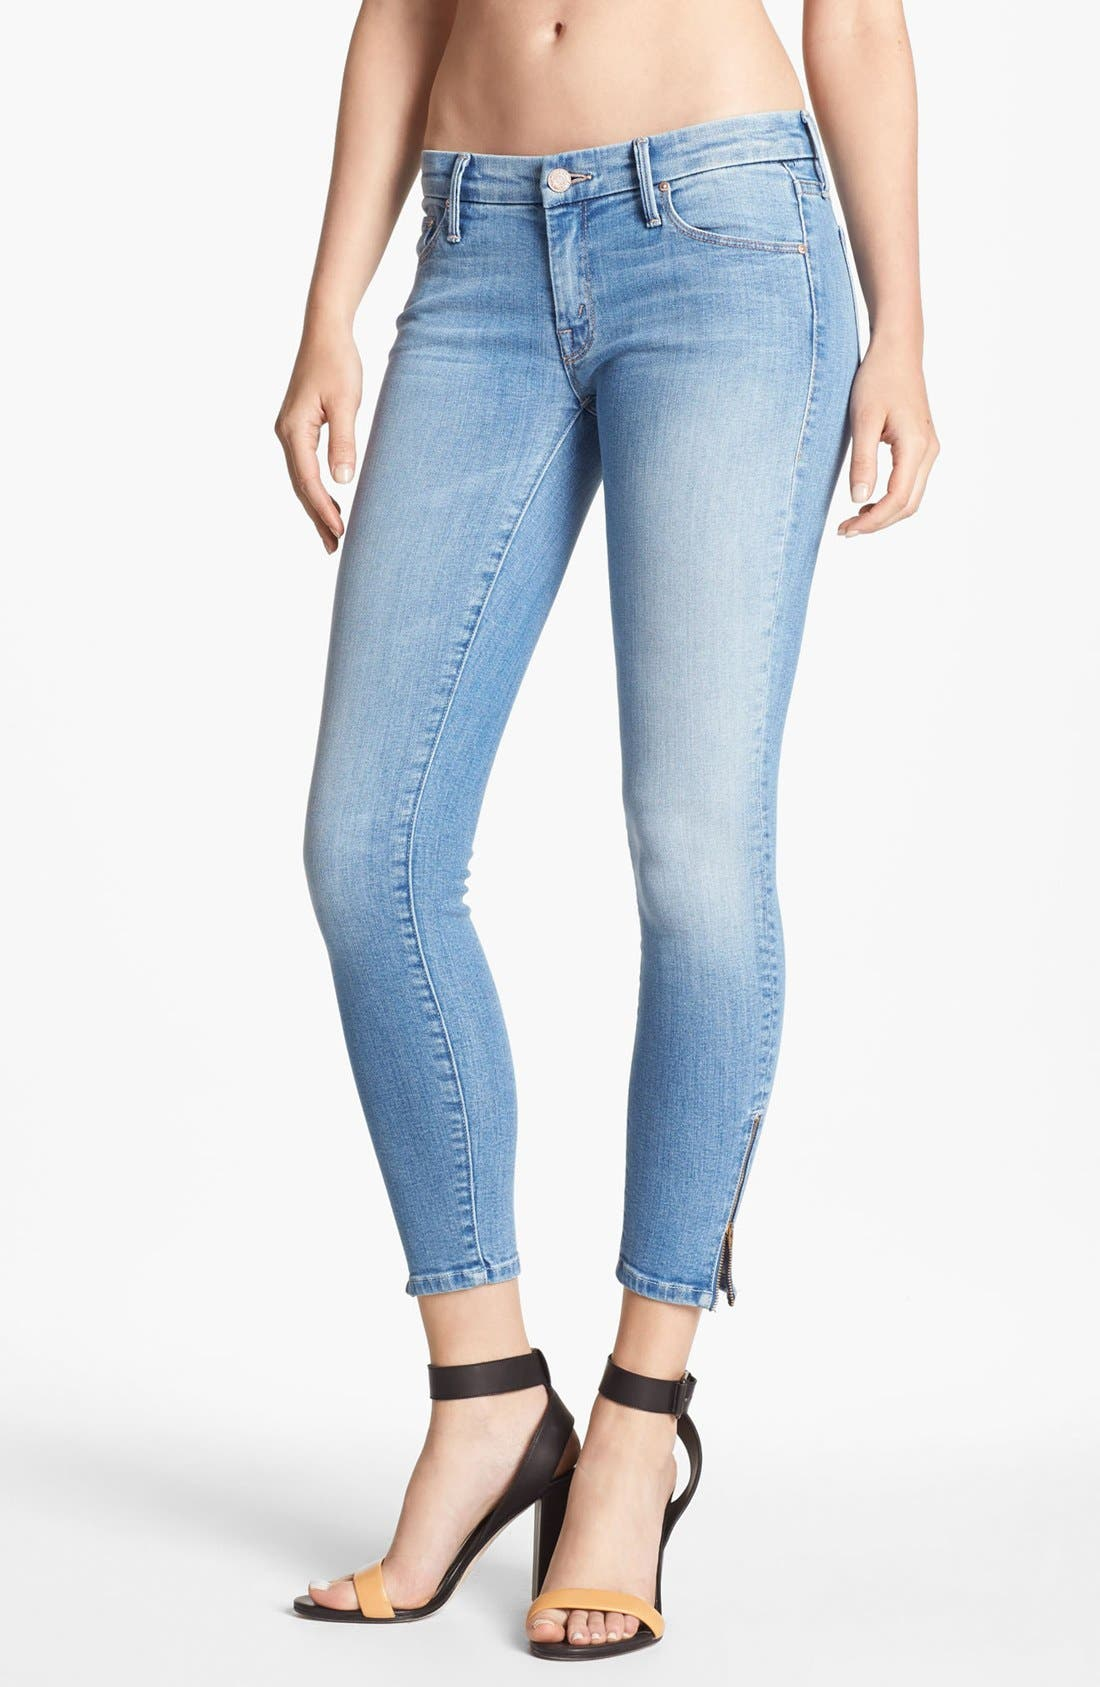 Alternate Image 1 Selected - MOTHER 'The Looker' Ankle Zip Skinny Jeans (Light Kitty)